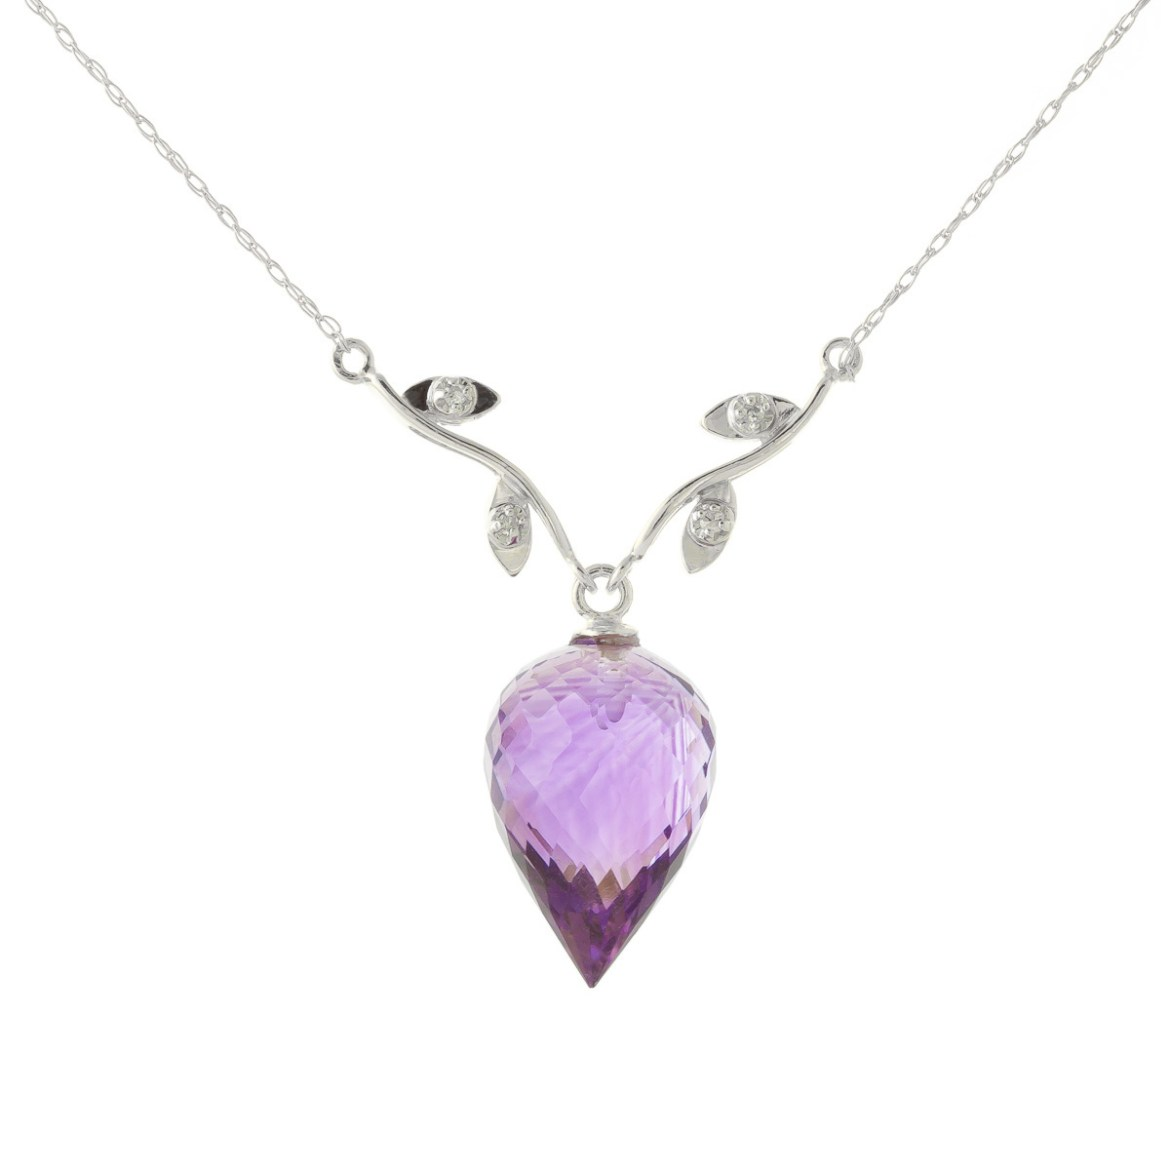 Amethyst and Diamond Pendant Necklace 9.5ct in 9ct White Gold